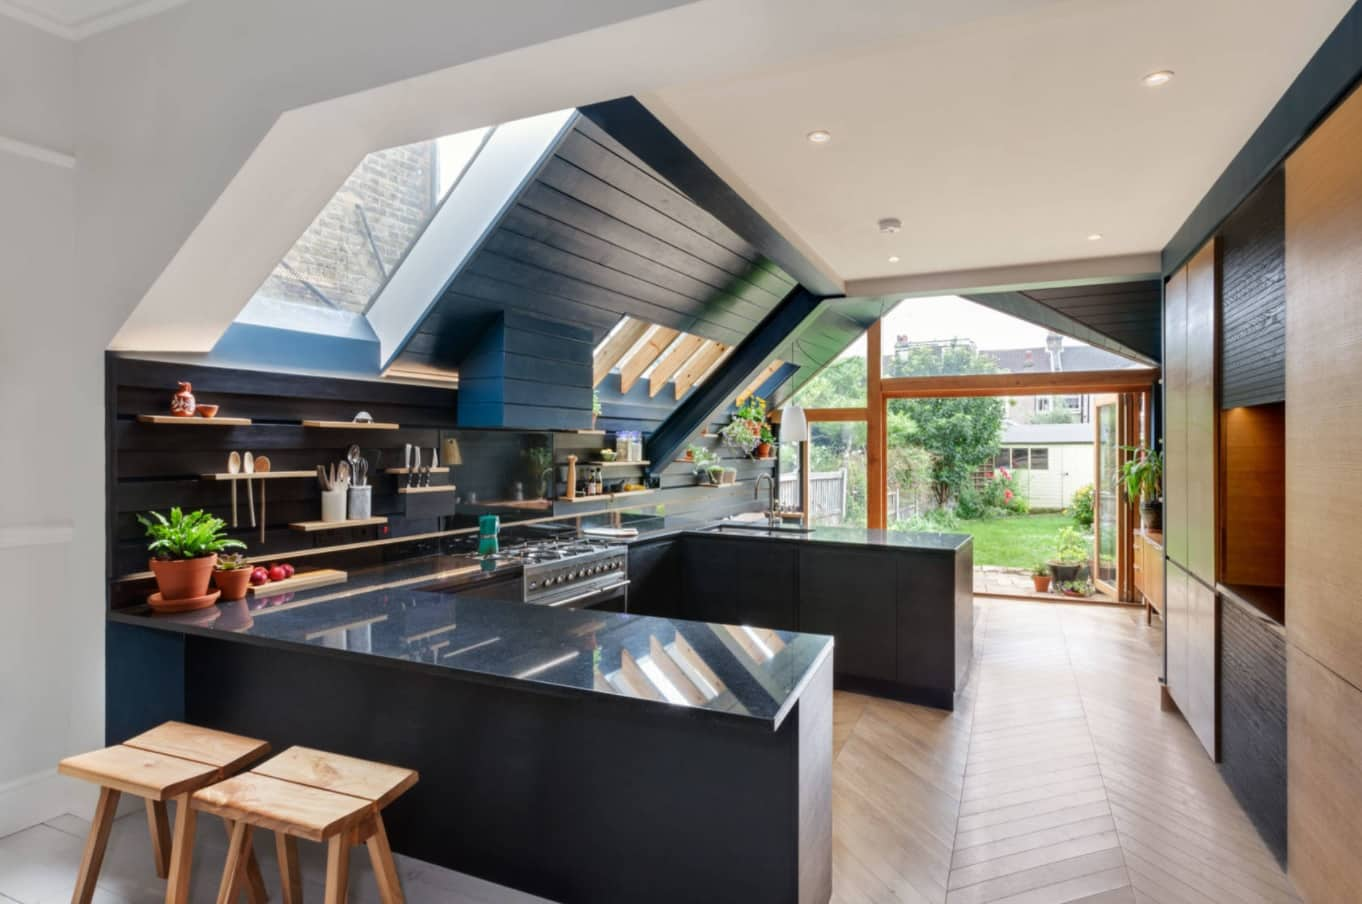 The Benefits Of Renovating Or Extending A Home. Dark color theme in the modern styled summer kitchen